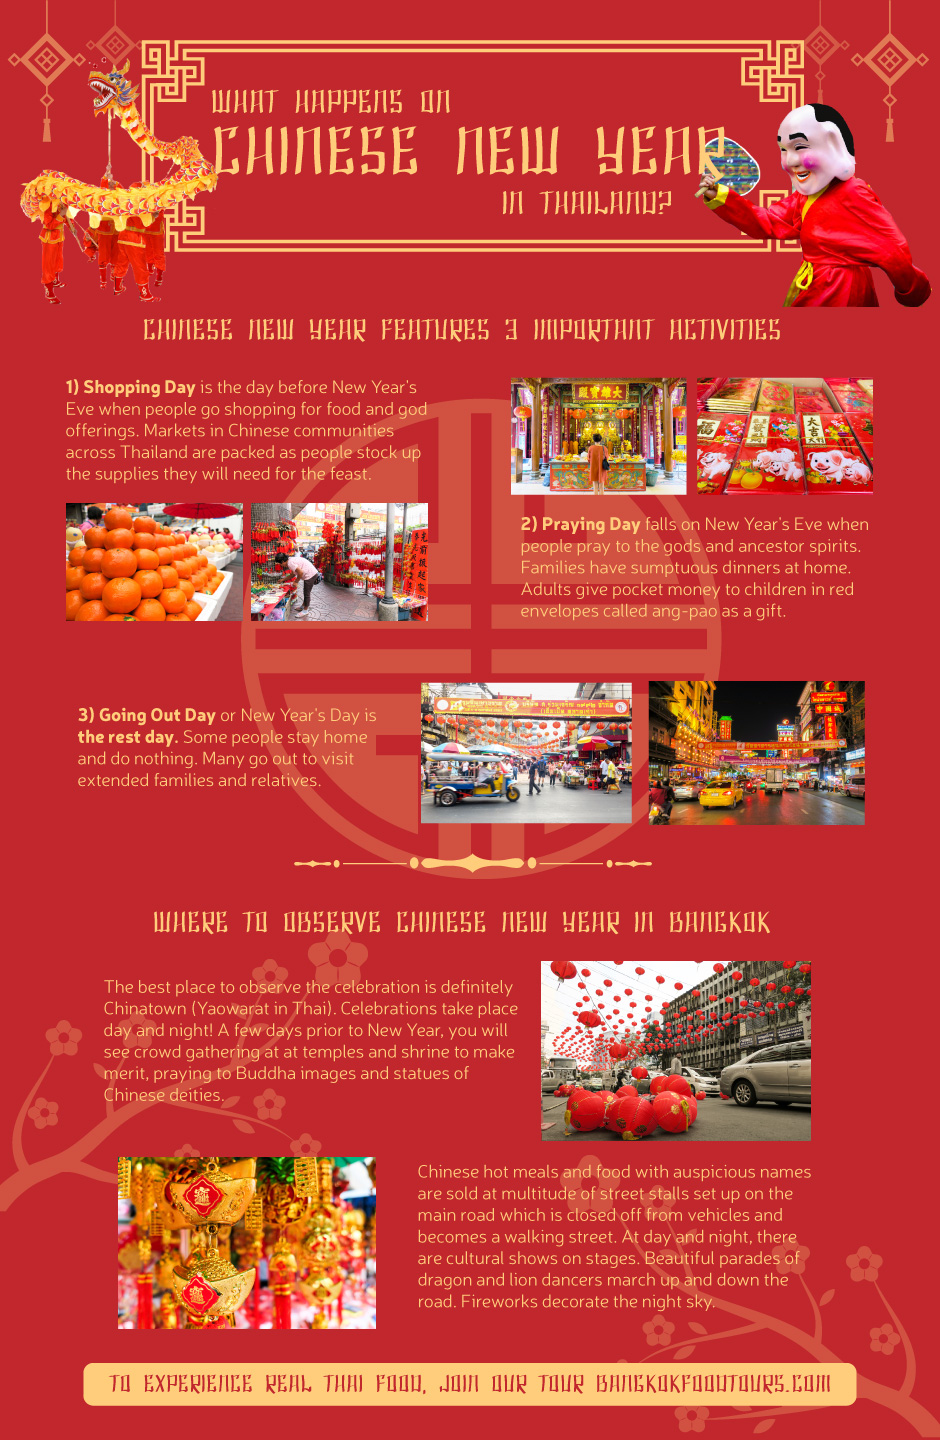 Info graphic | Chinese New Year in Bangkok | Bangkok Food Tours